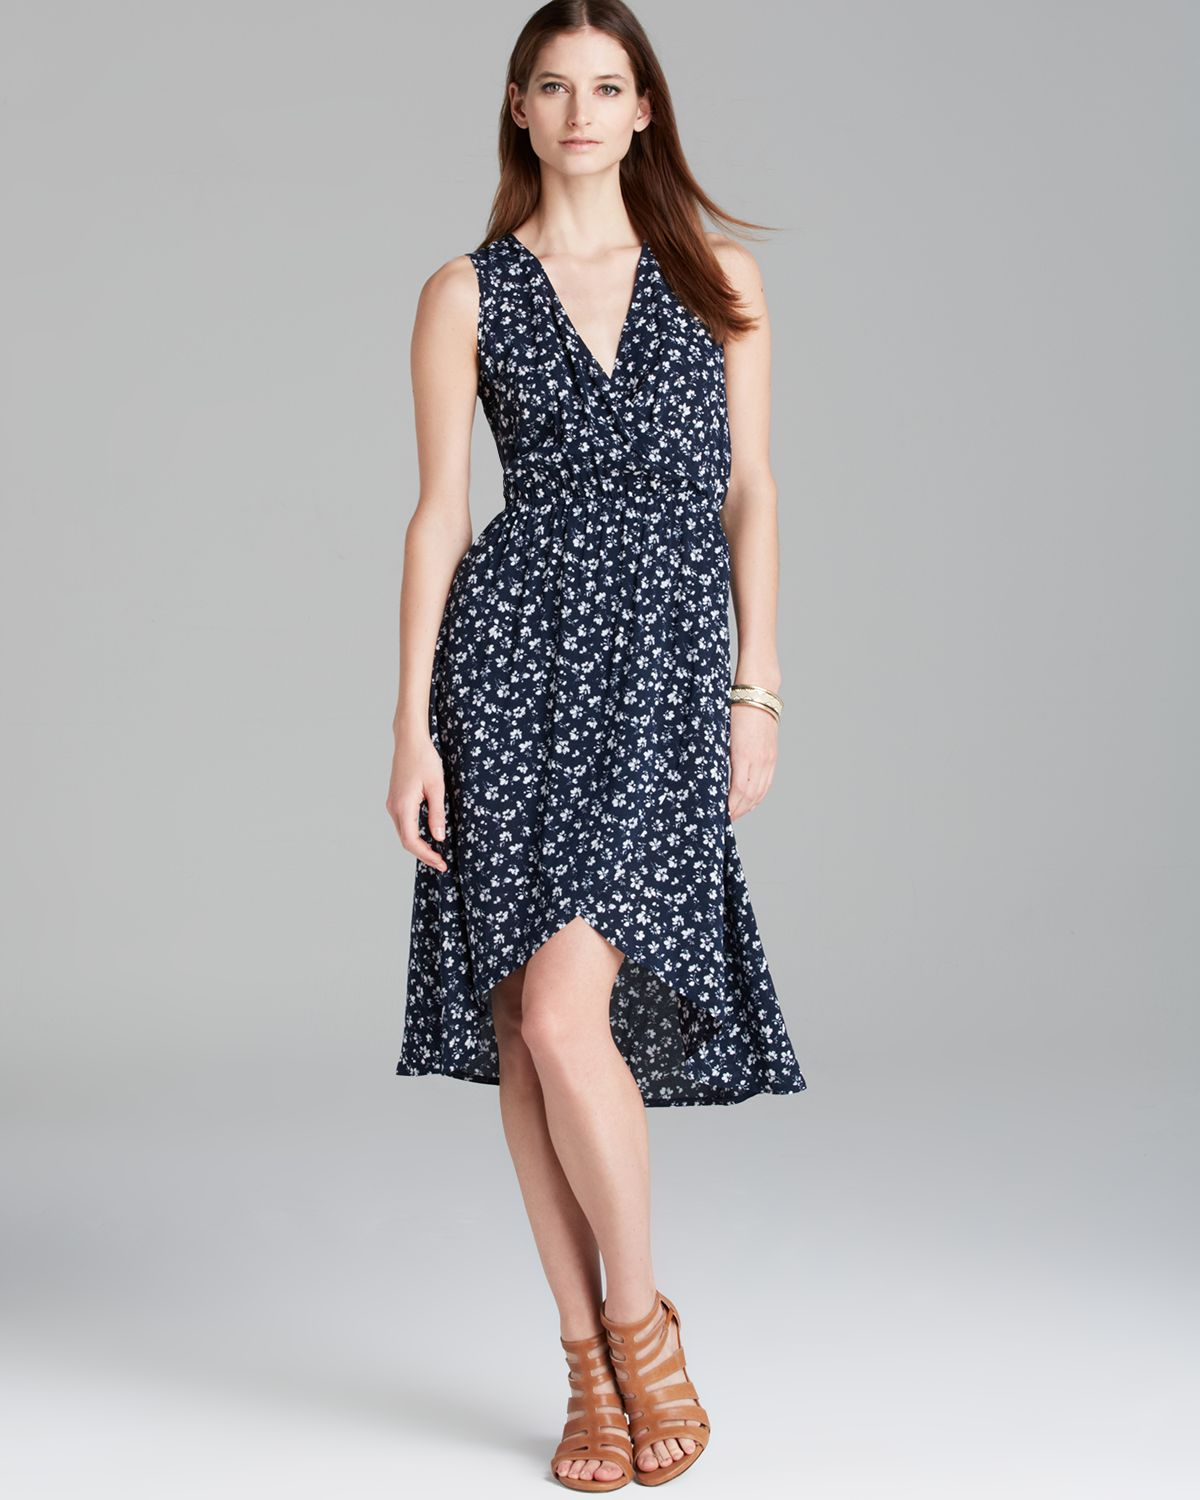 d469237d5 Two By Vince Camuto Sleeveless Floral Wrap Dress in Blue - Lyst